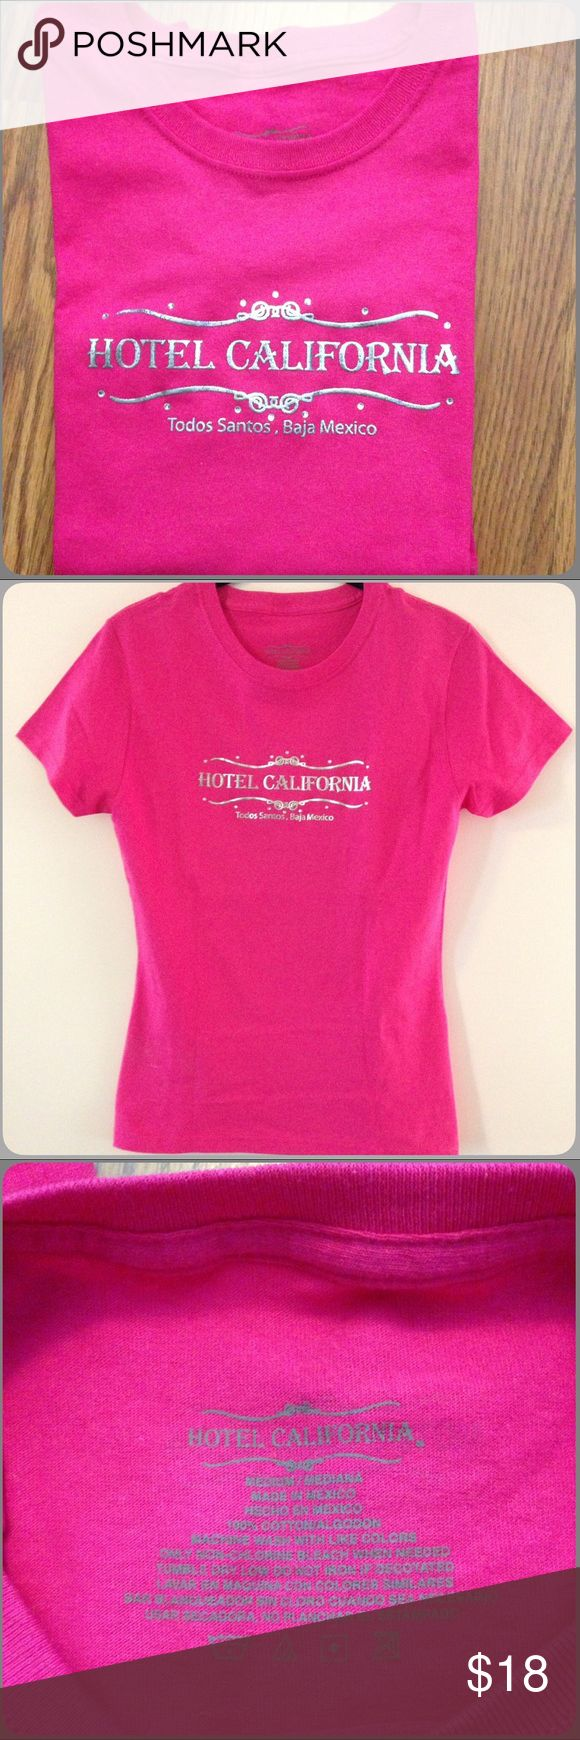 HOTEL CALIFORNIA-Todos Santos, Baja Mexico🏩 HOTEL CALIFORNIA-Todos Santos, Baja Mexico Hot Pink T-shirt. Silver Lettering. This was purchased at the hotel! NWOT. Never worn. Size S Tops Tees - Short Sleeve